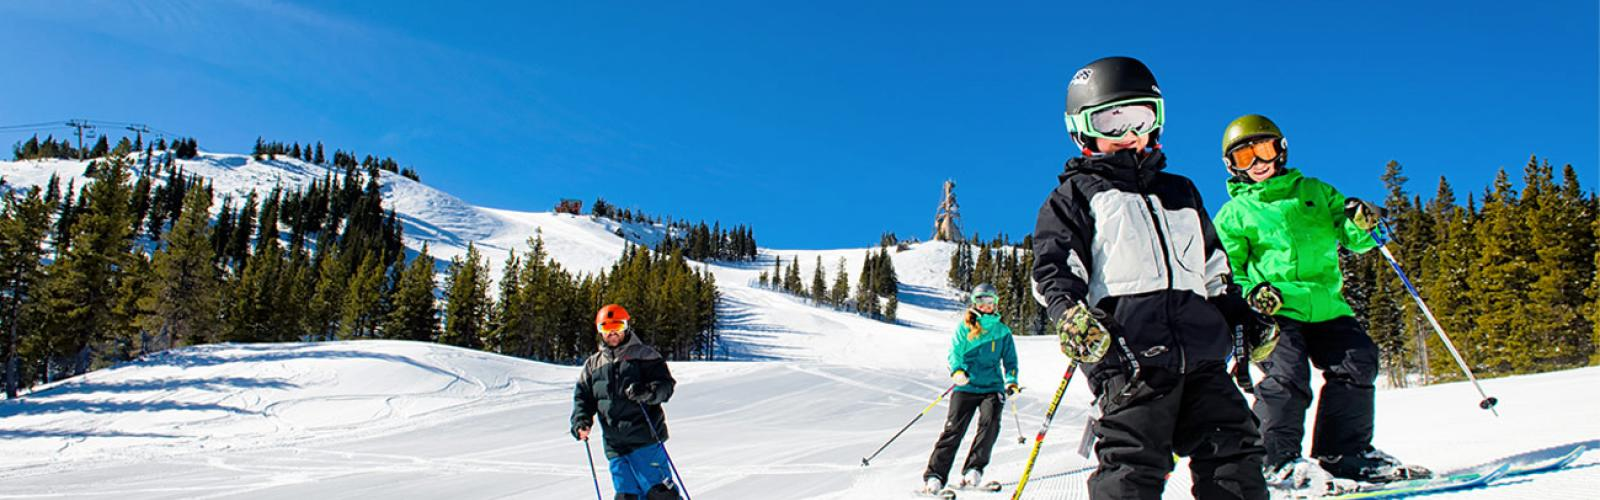 Family of four smiling and skiing on groomed run with blue skies